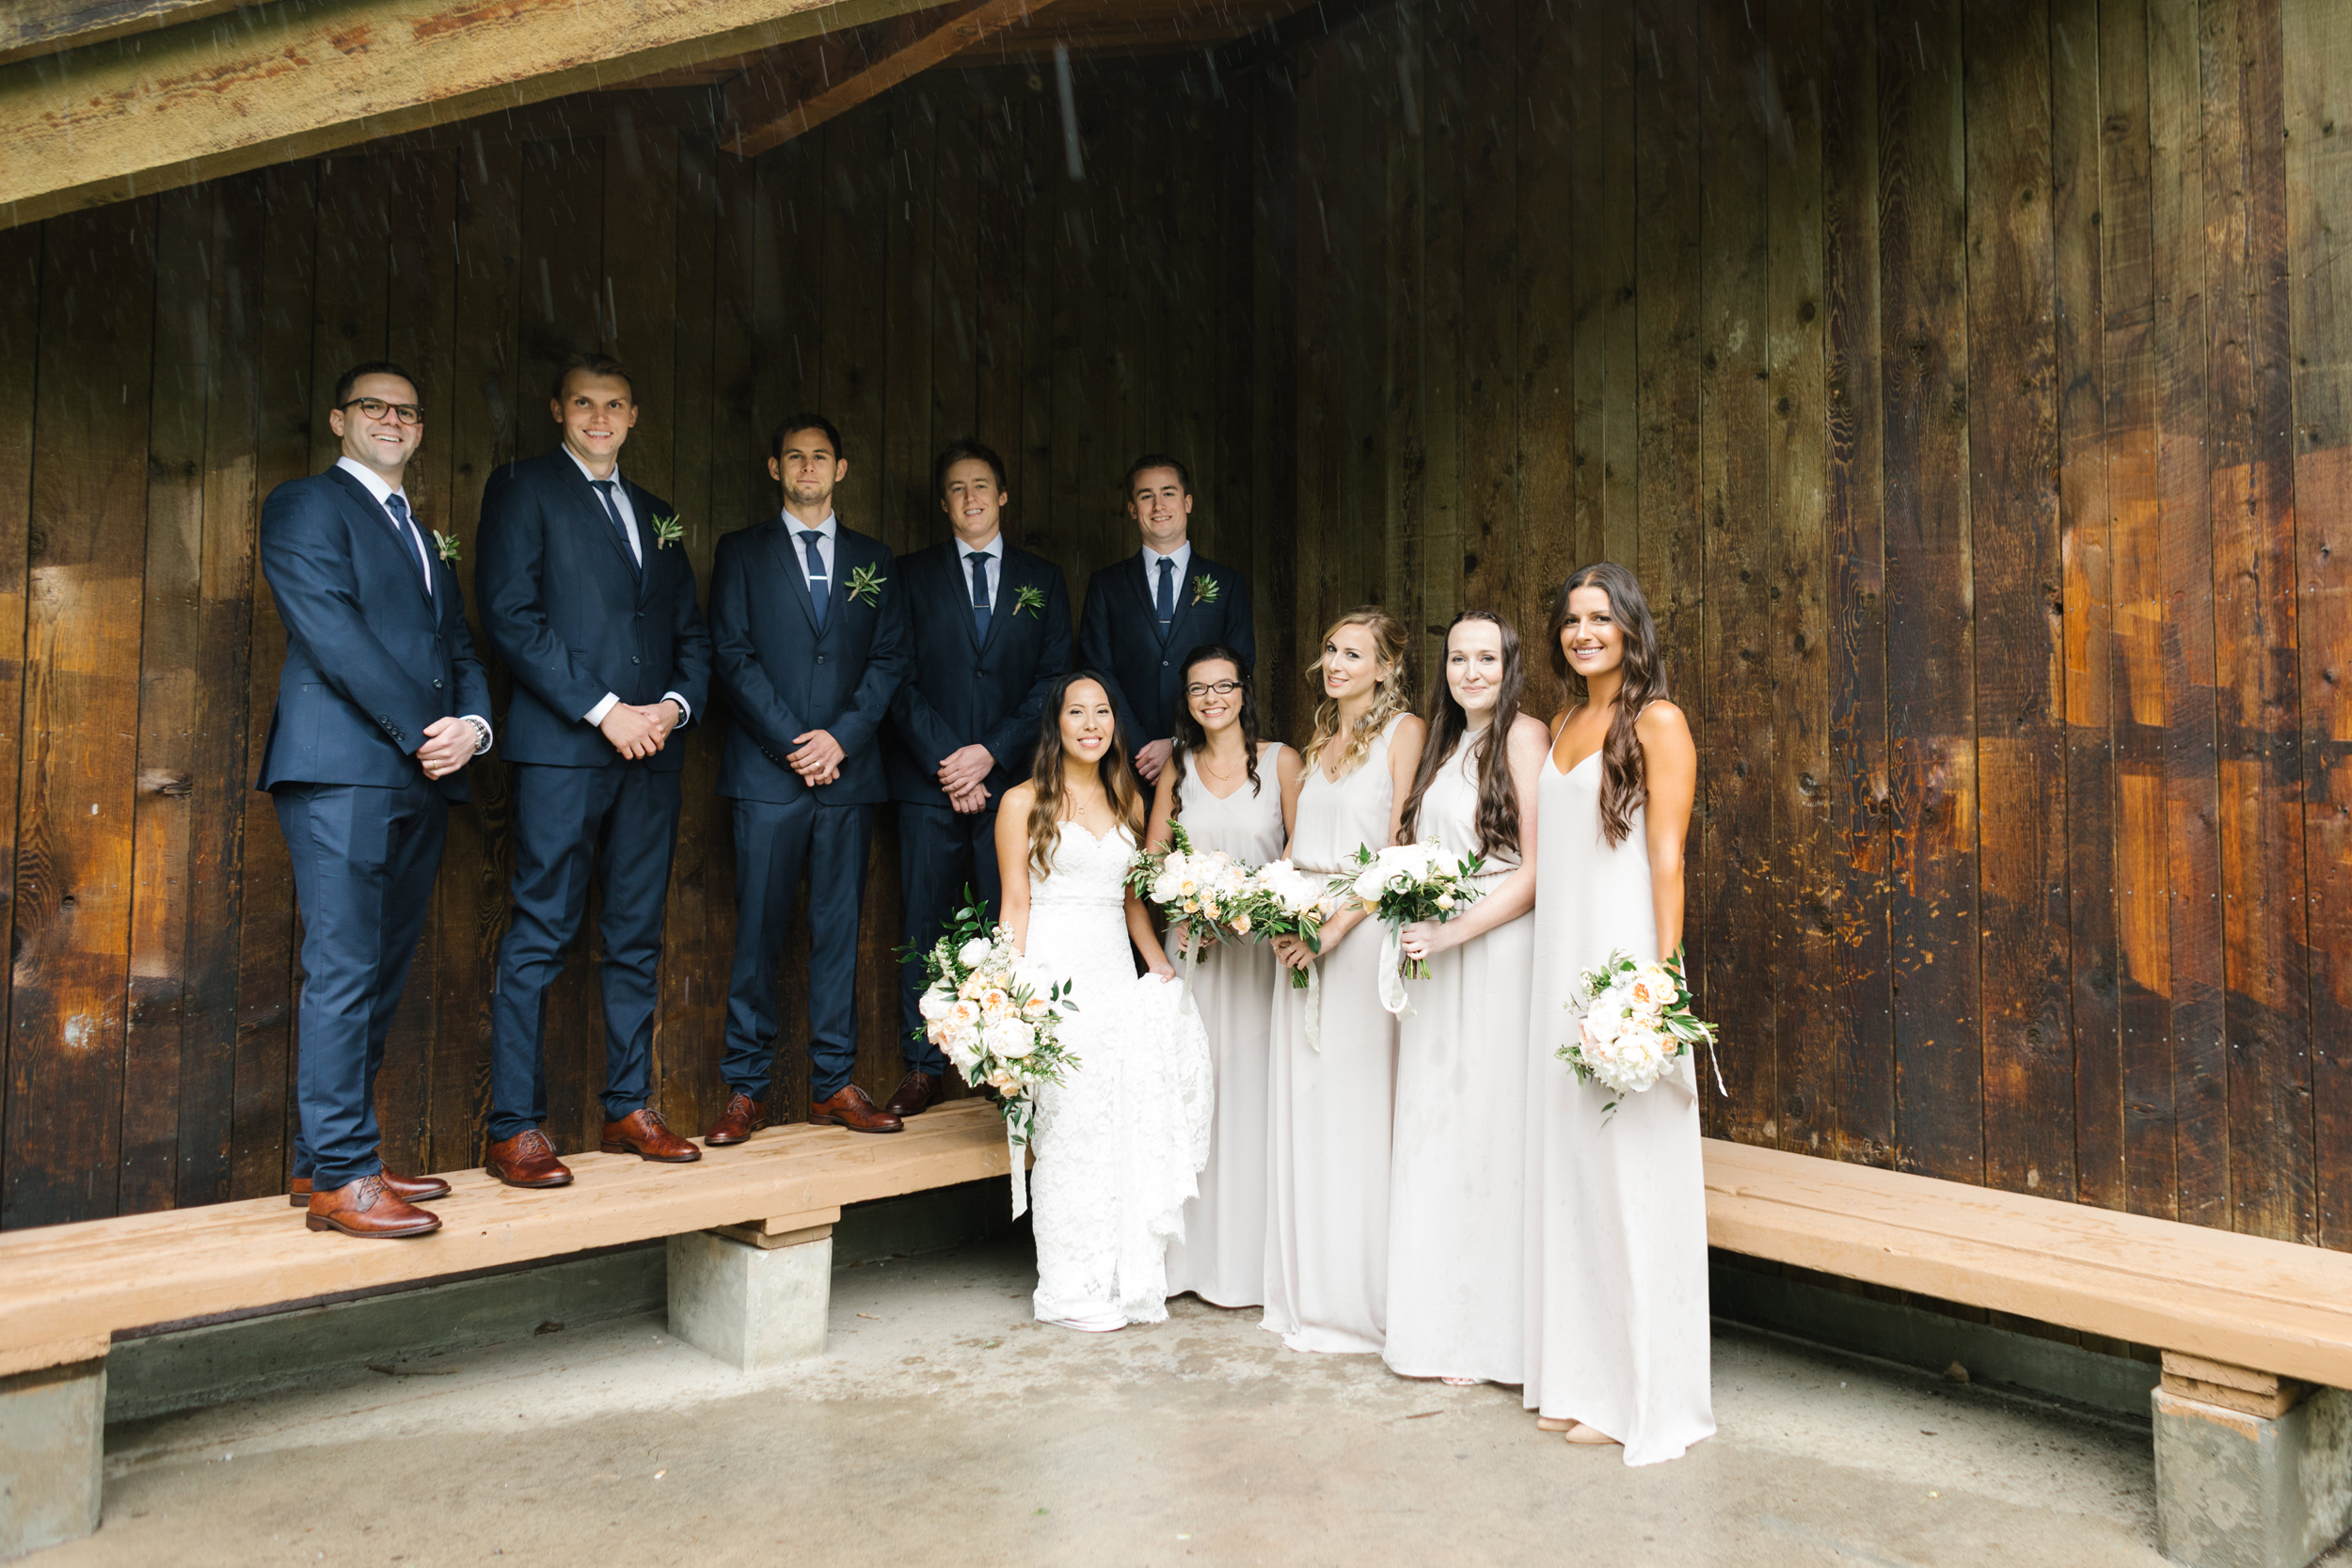 Calgary_The_Lakehouse_Wedding0013.jpg